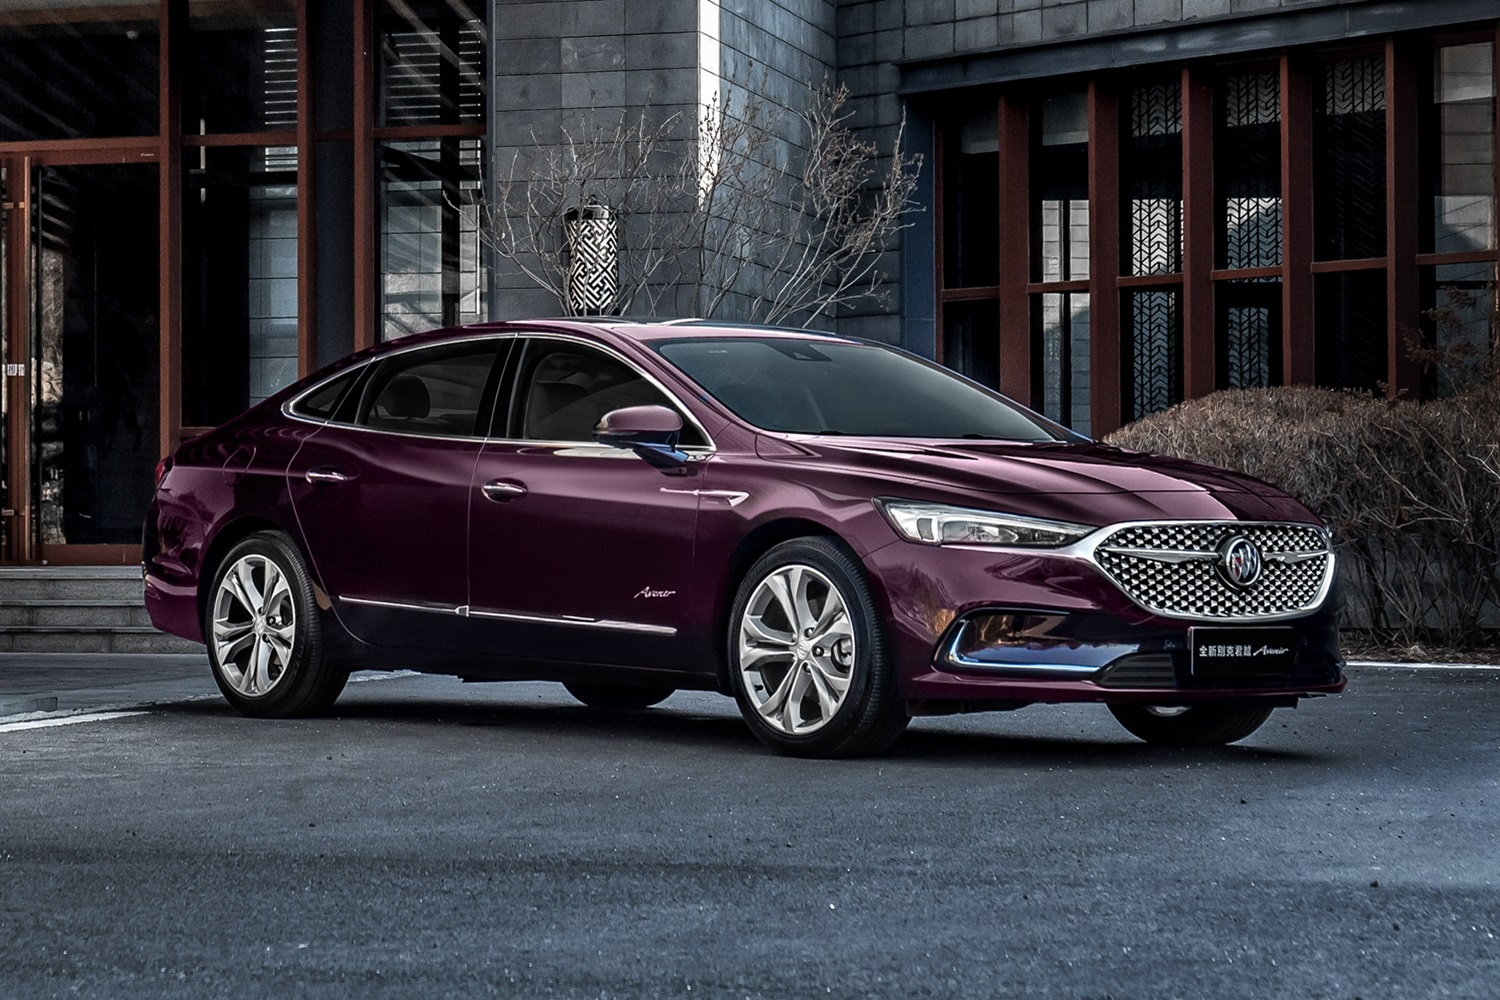 2021 Buick Lacrosse Gets More Refined Than Ever | Gm Authority New 2022 Buick Lucerne Rims, Tire Size, Headlights